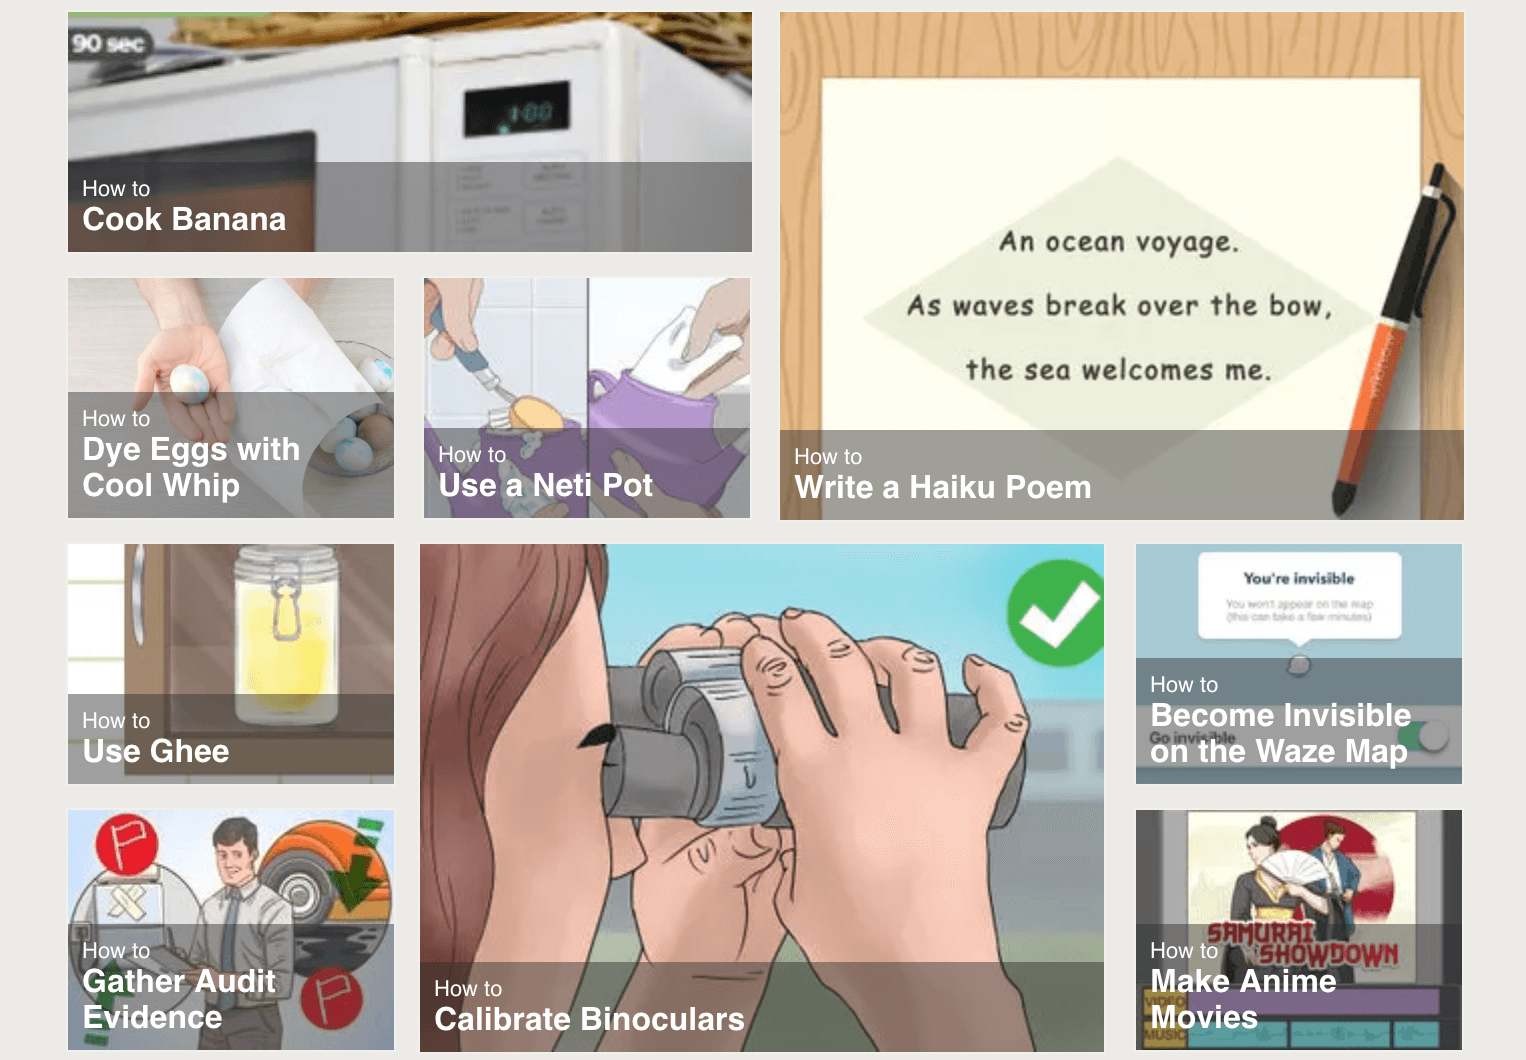 Examples of post titles from the wikiHow Main Page.